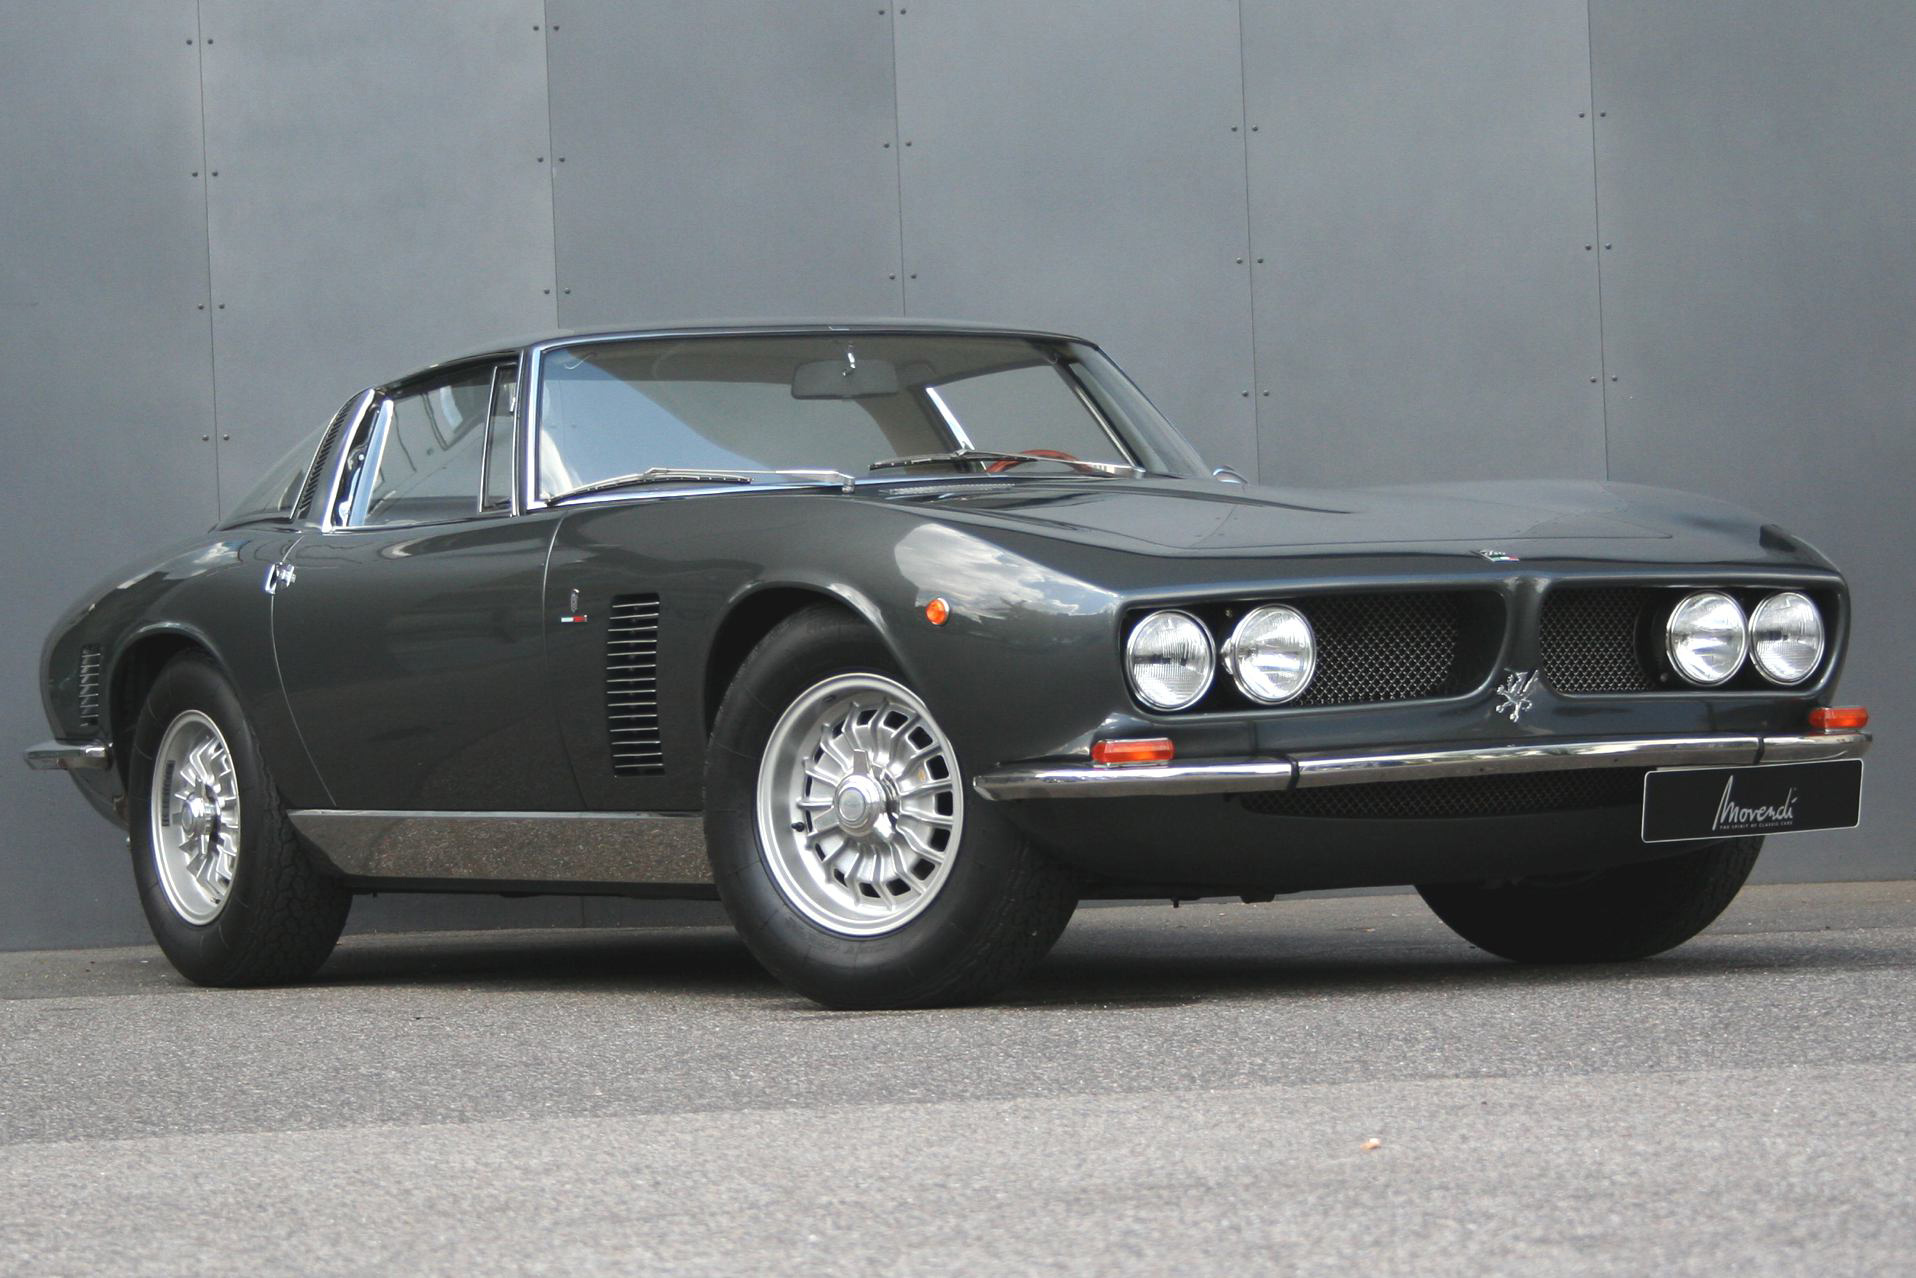 Iso  Grifo GL 365 Lusso Serie 1